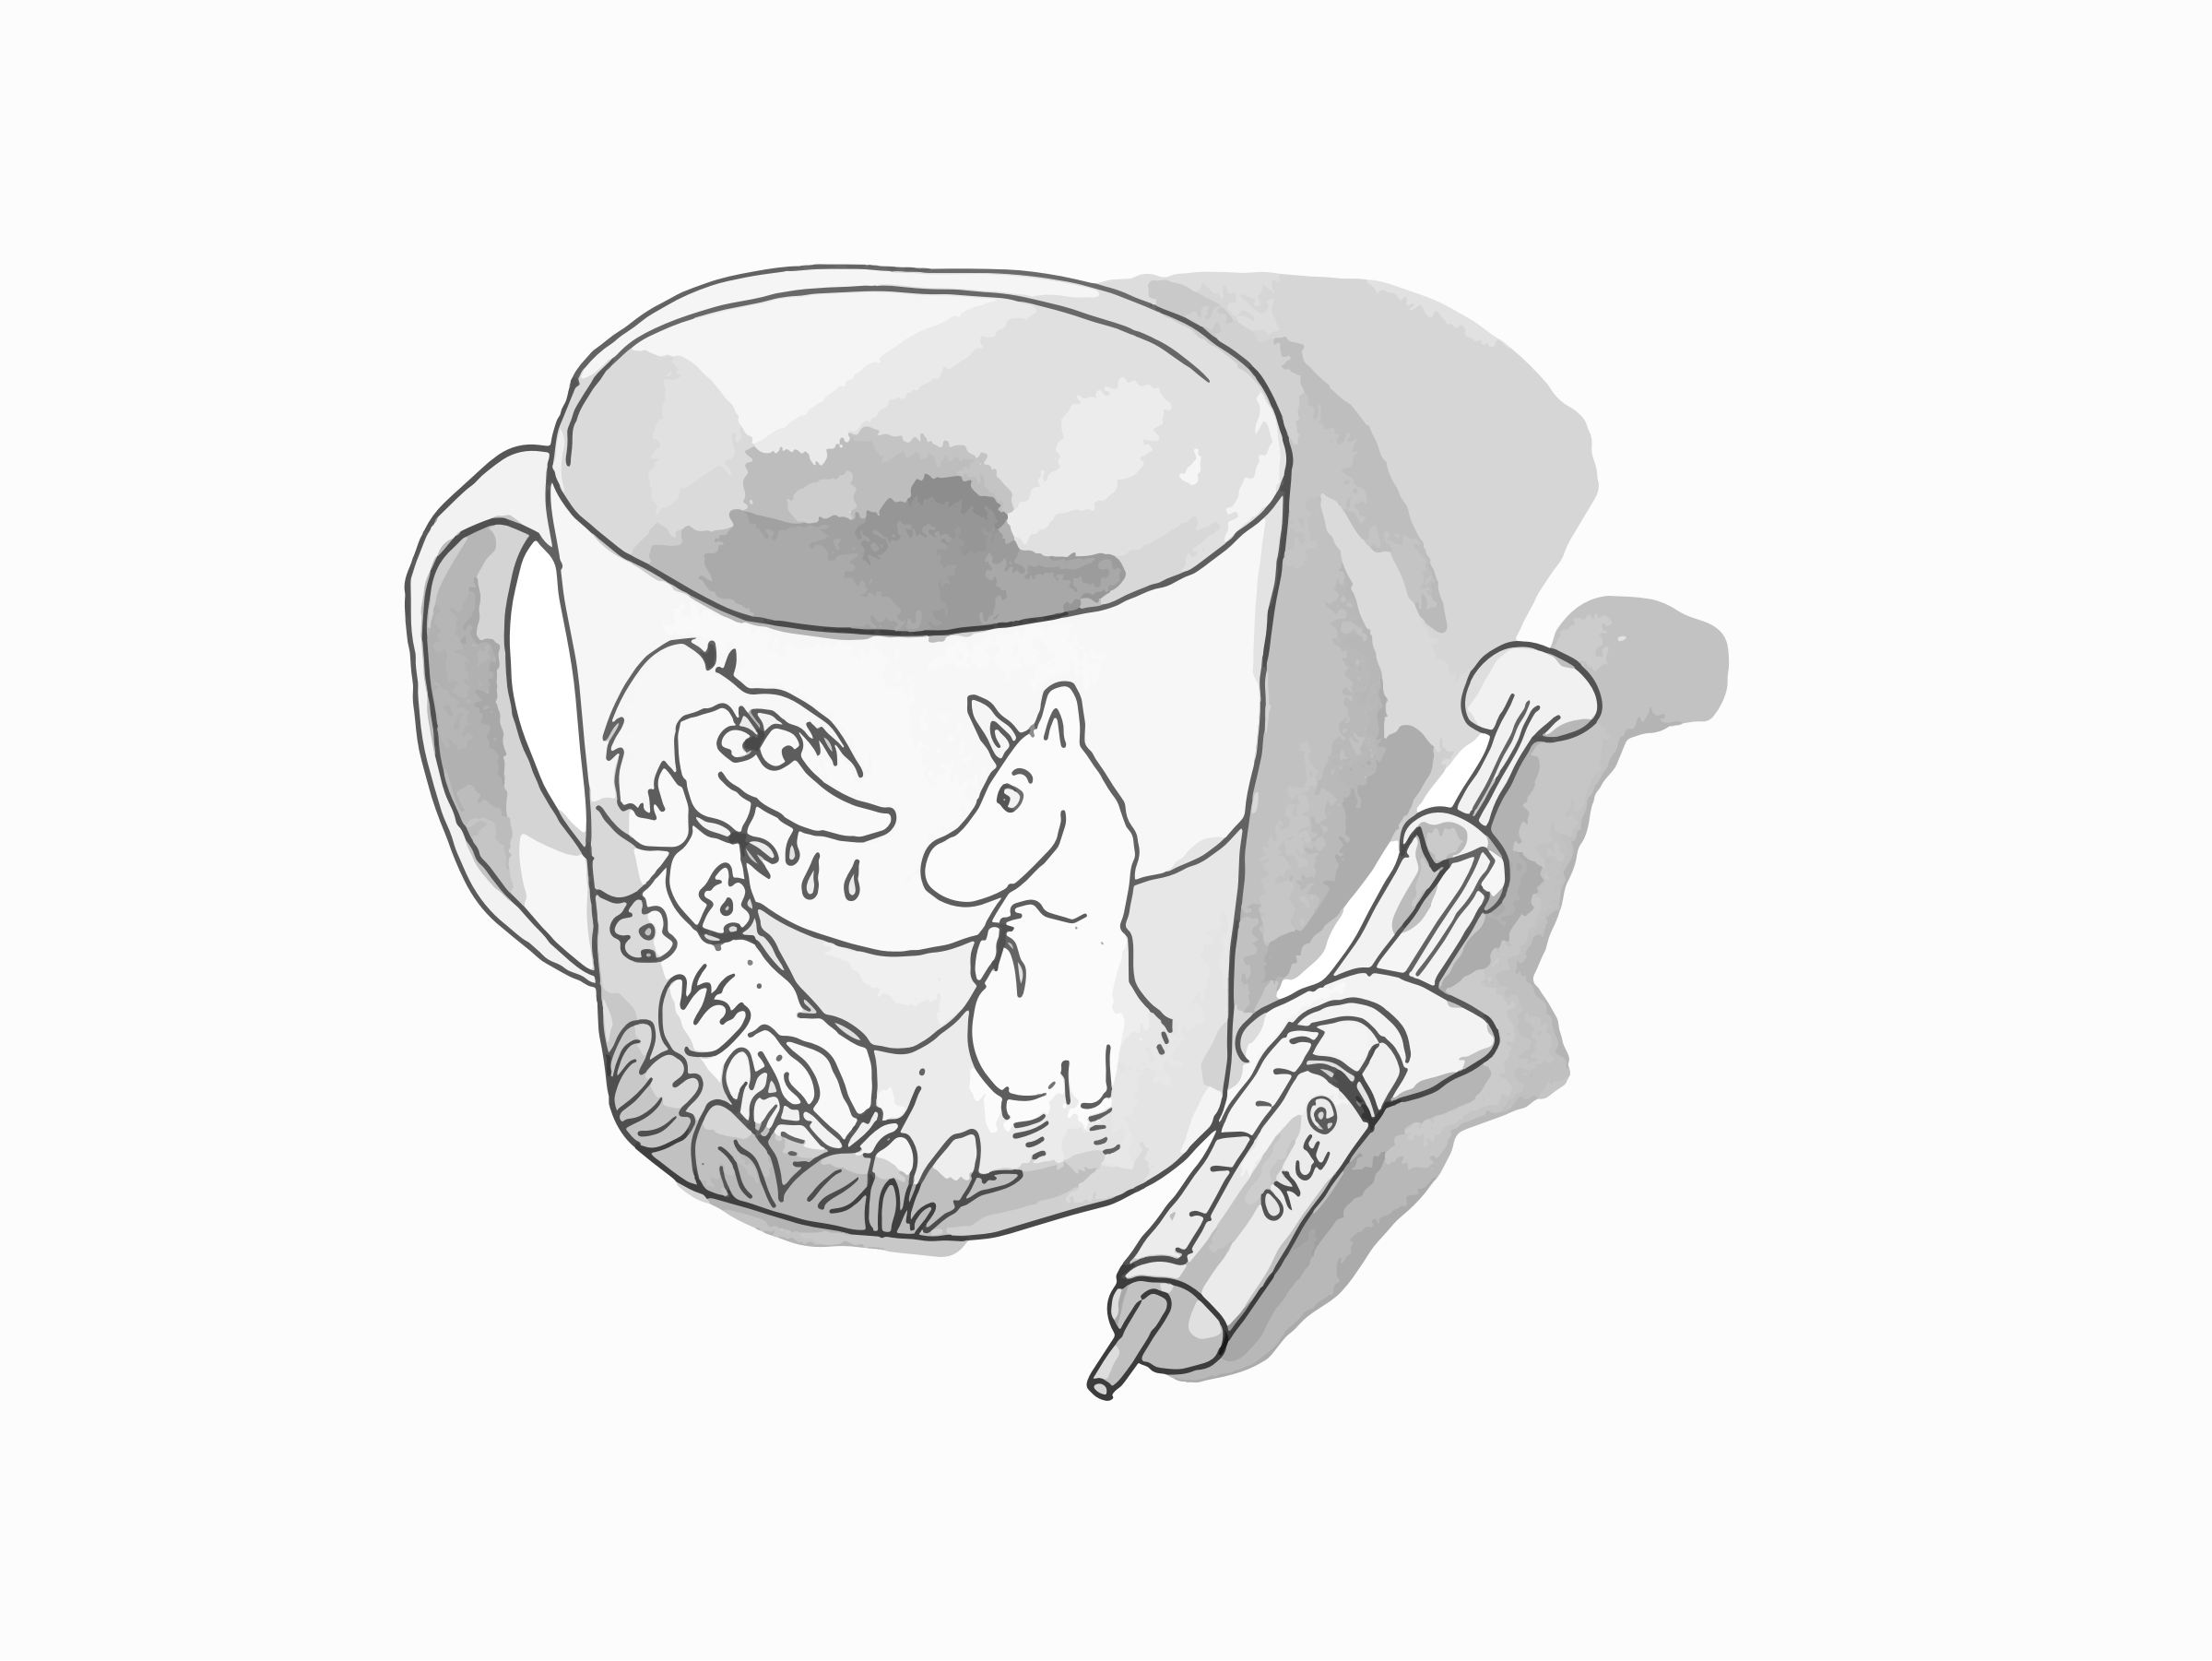 Moomin character cup and a syringe by ldezem